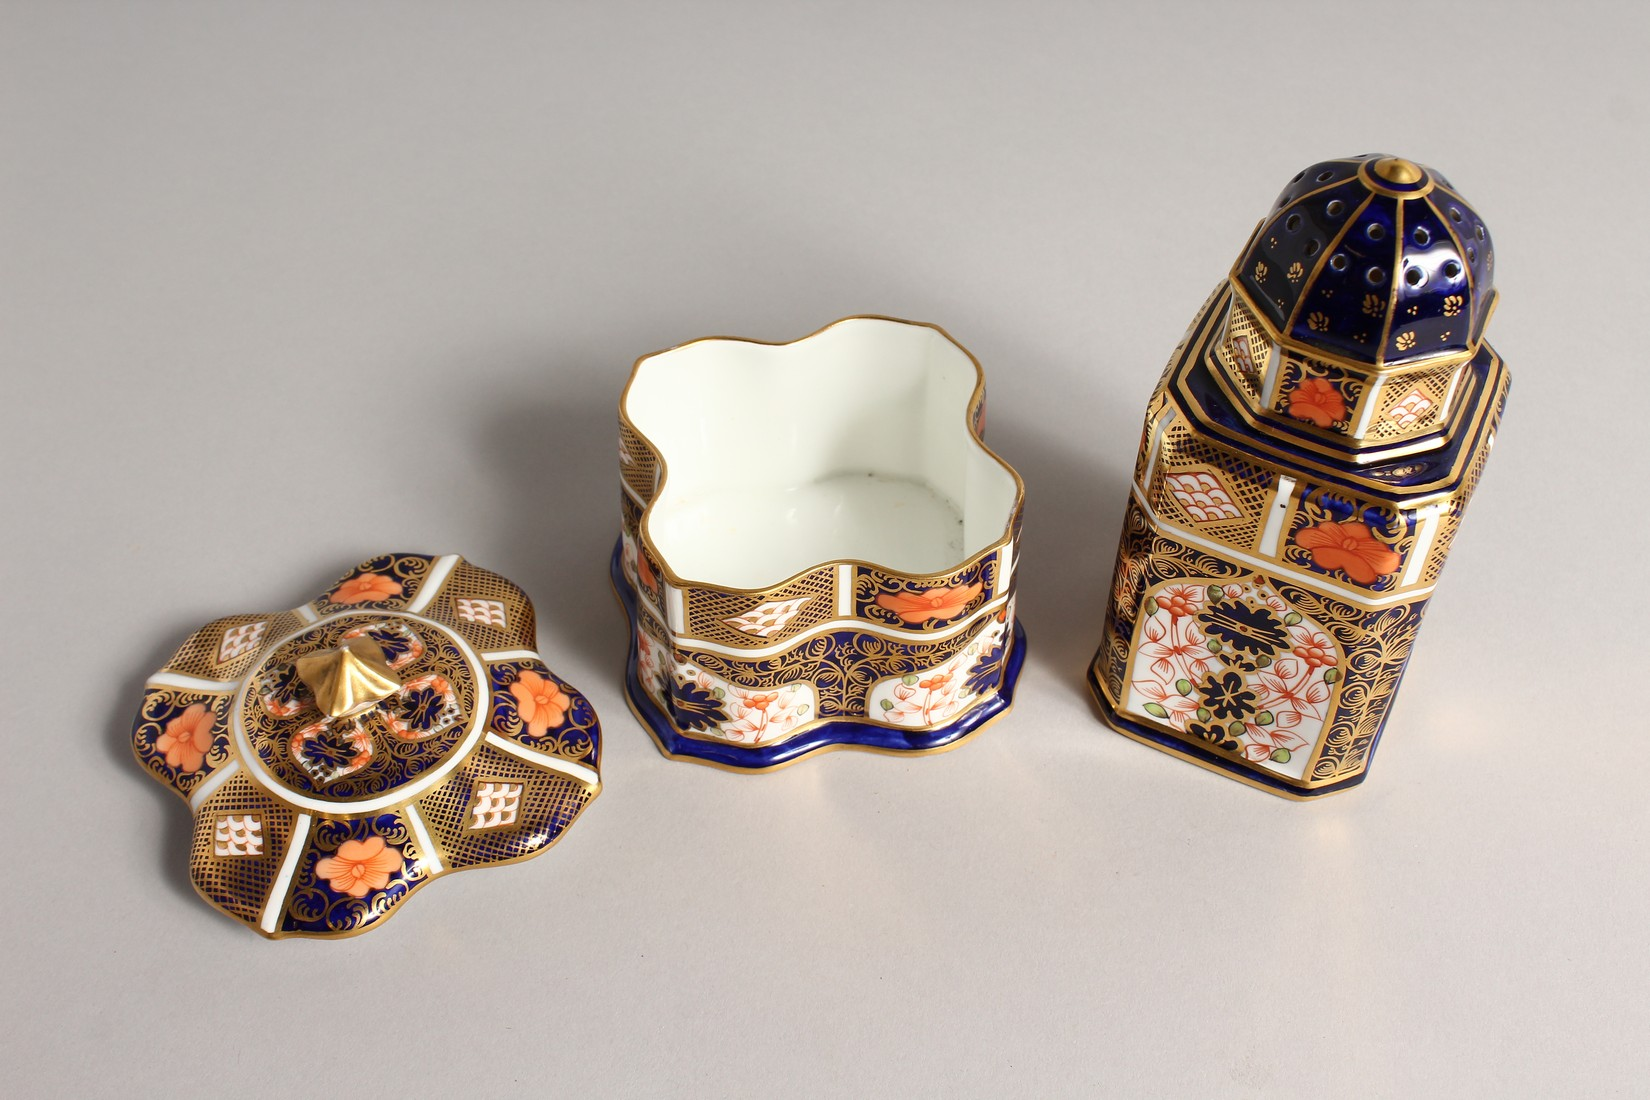 A ROYAL CROWN DERBY JAPAN PATTERN SQUARE SUGAR SIFTER, No. 1128. 6ins high and a SQUARE SUPERB BOX - Image 5 of 10